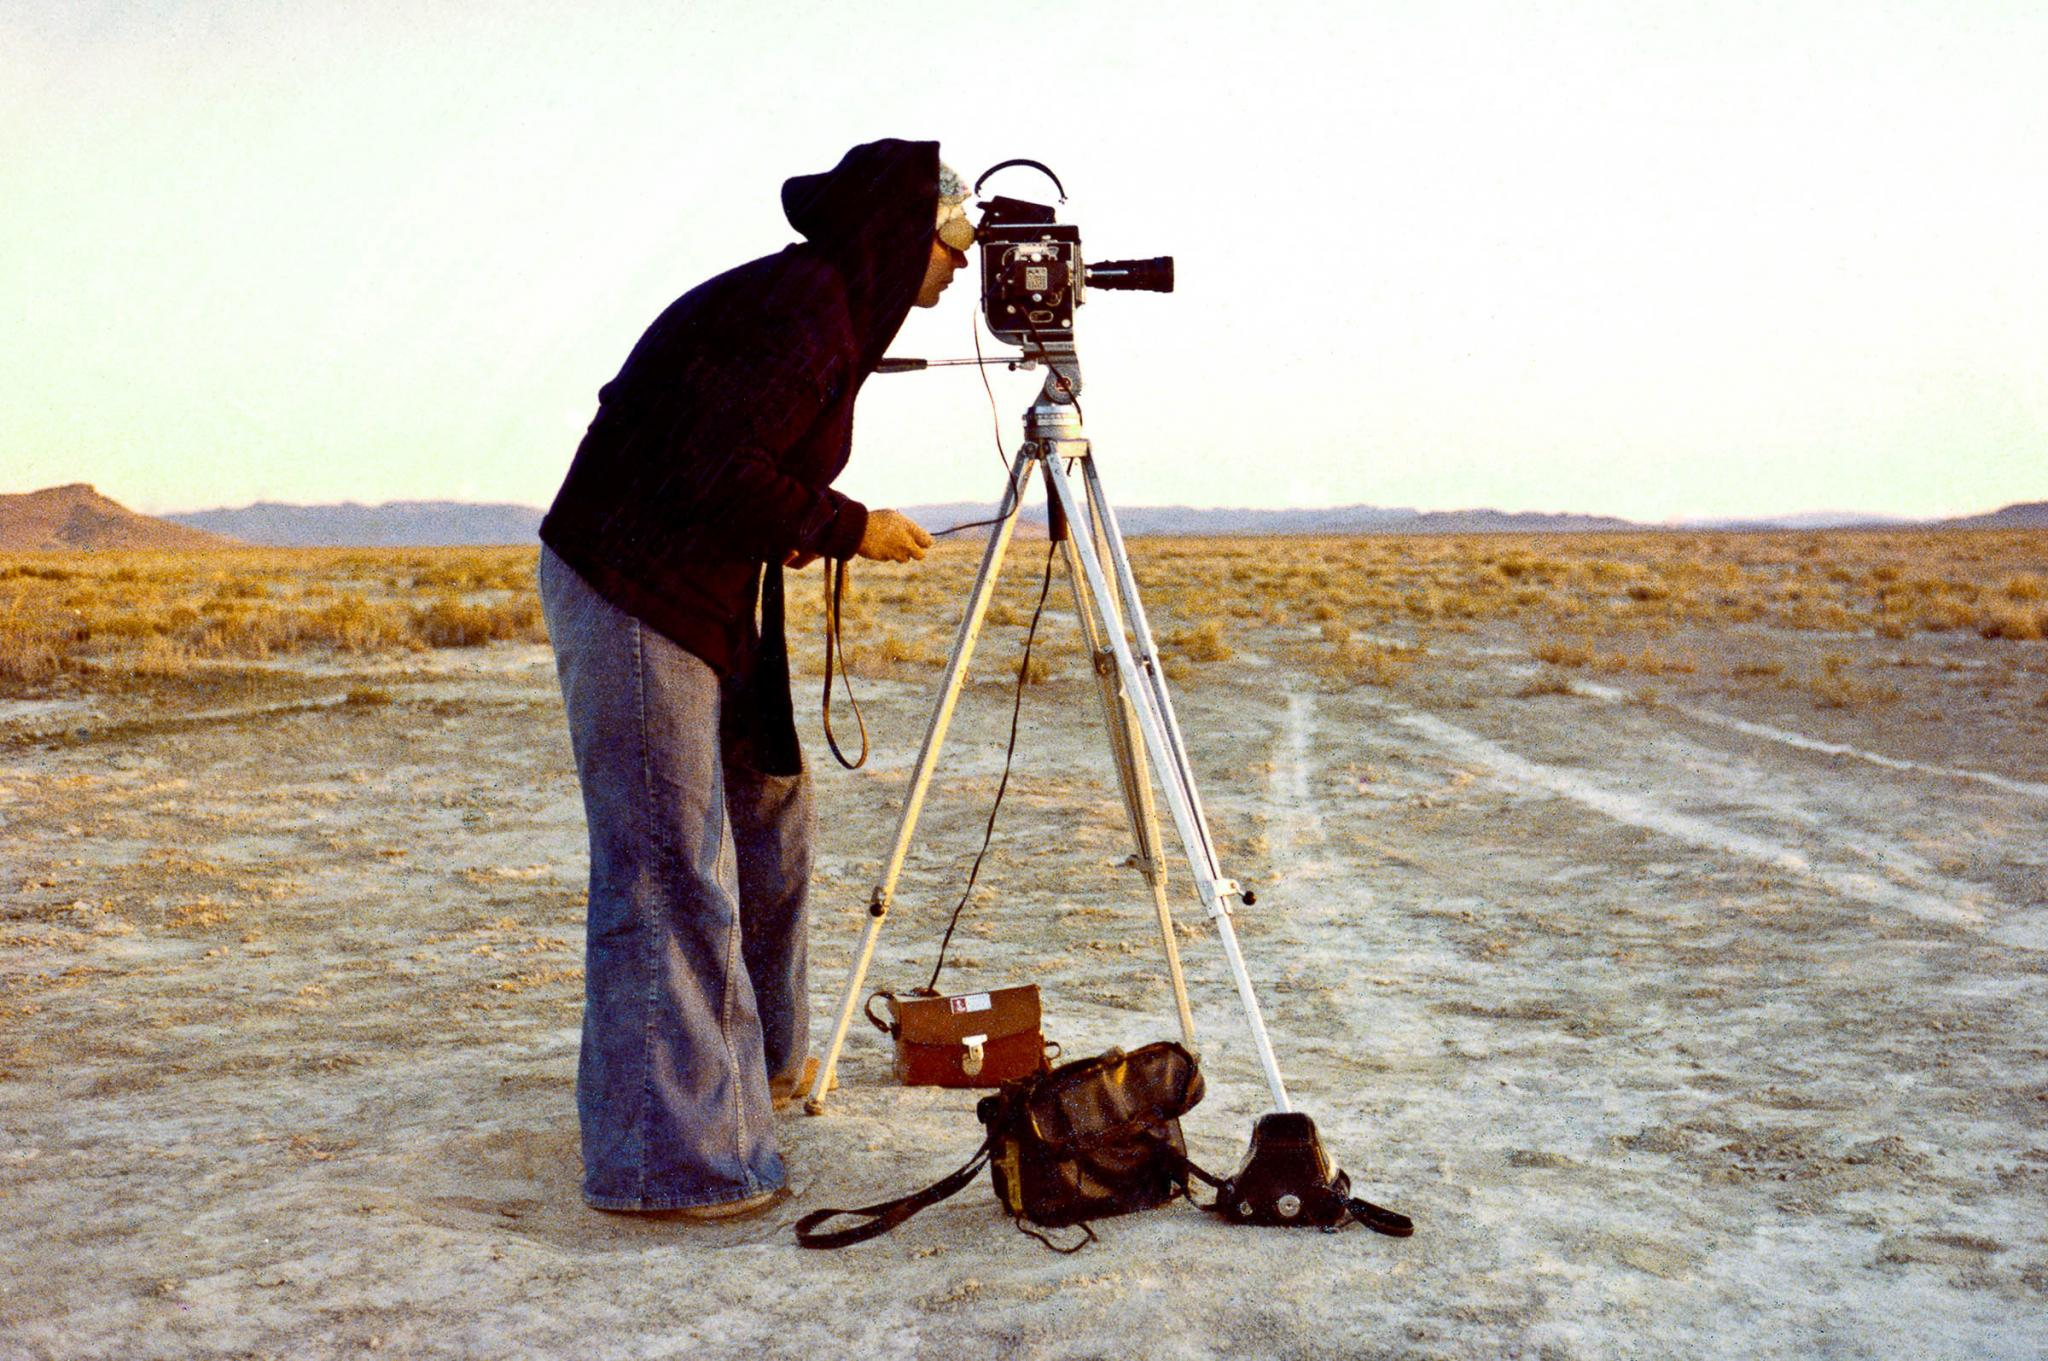 side angle of a figure standing looking through a film camera on a tripod while out in the desert